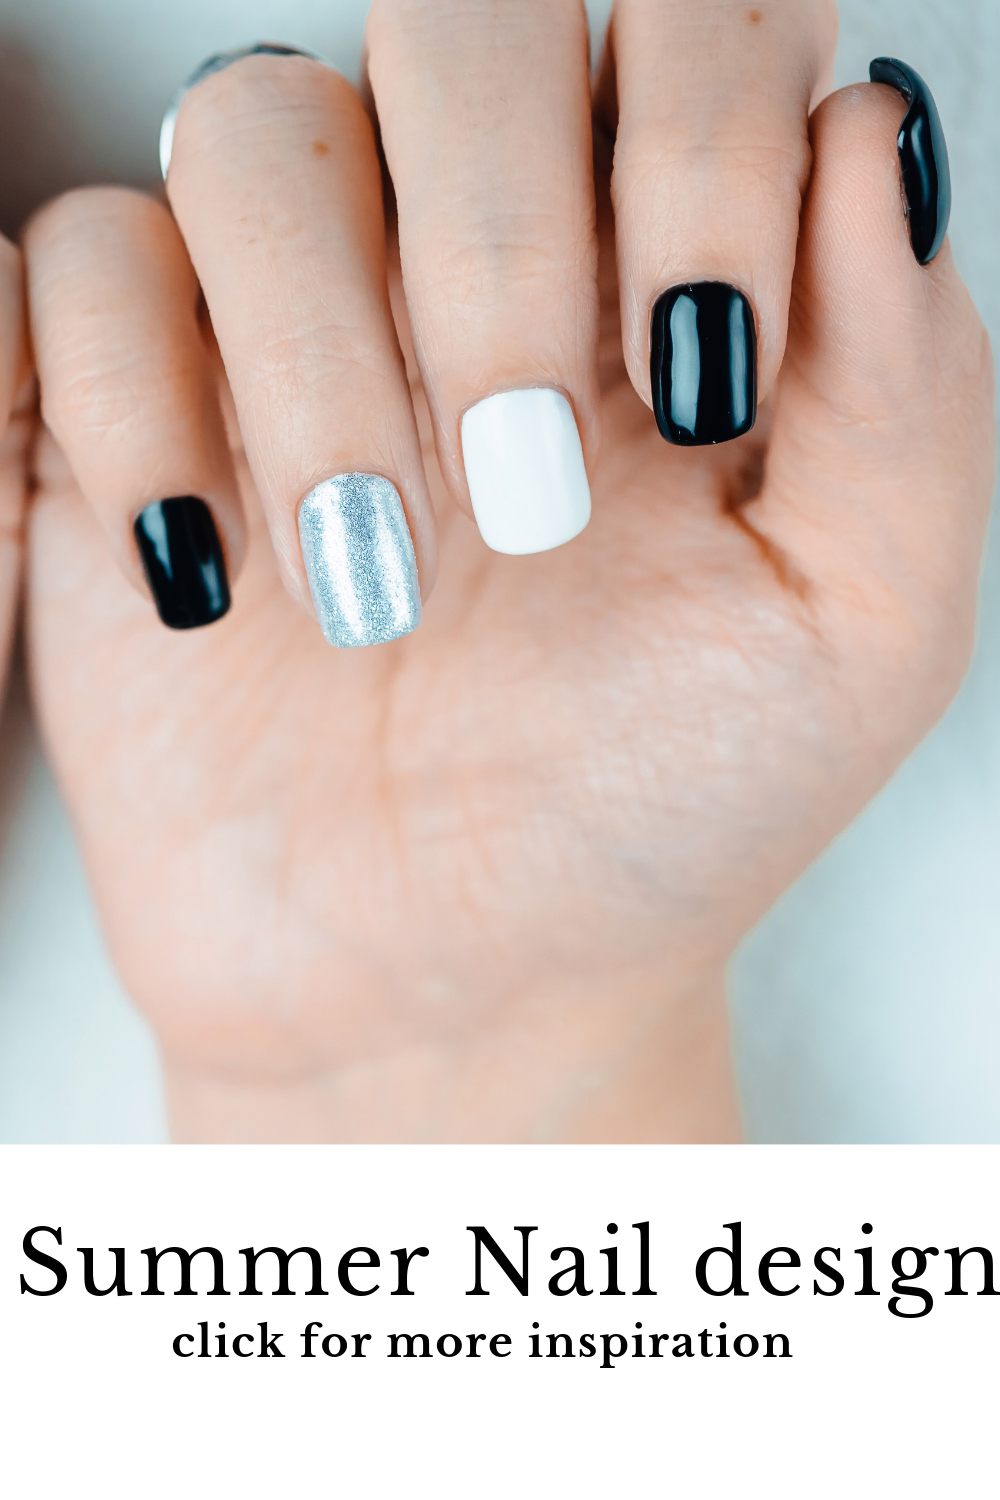 Wondering how to make your nails look gorgeous this summer? Check this post for summer nail colour either you prefer shellac or acrylic this simple bright, cute summer nail glitters. We got you covered. my favorite is #4 simply brings out the best in me. #nails #nailtutorials #beauty #chic #makeup #bossbabe / summer nail colour designs/beauty hacks